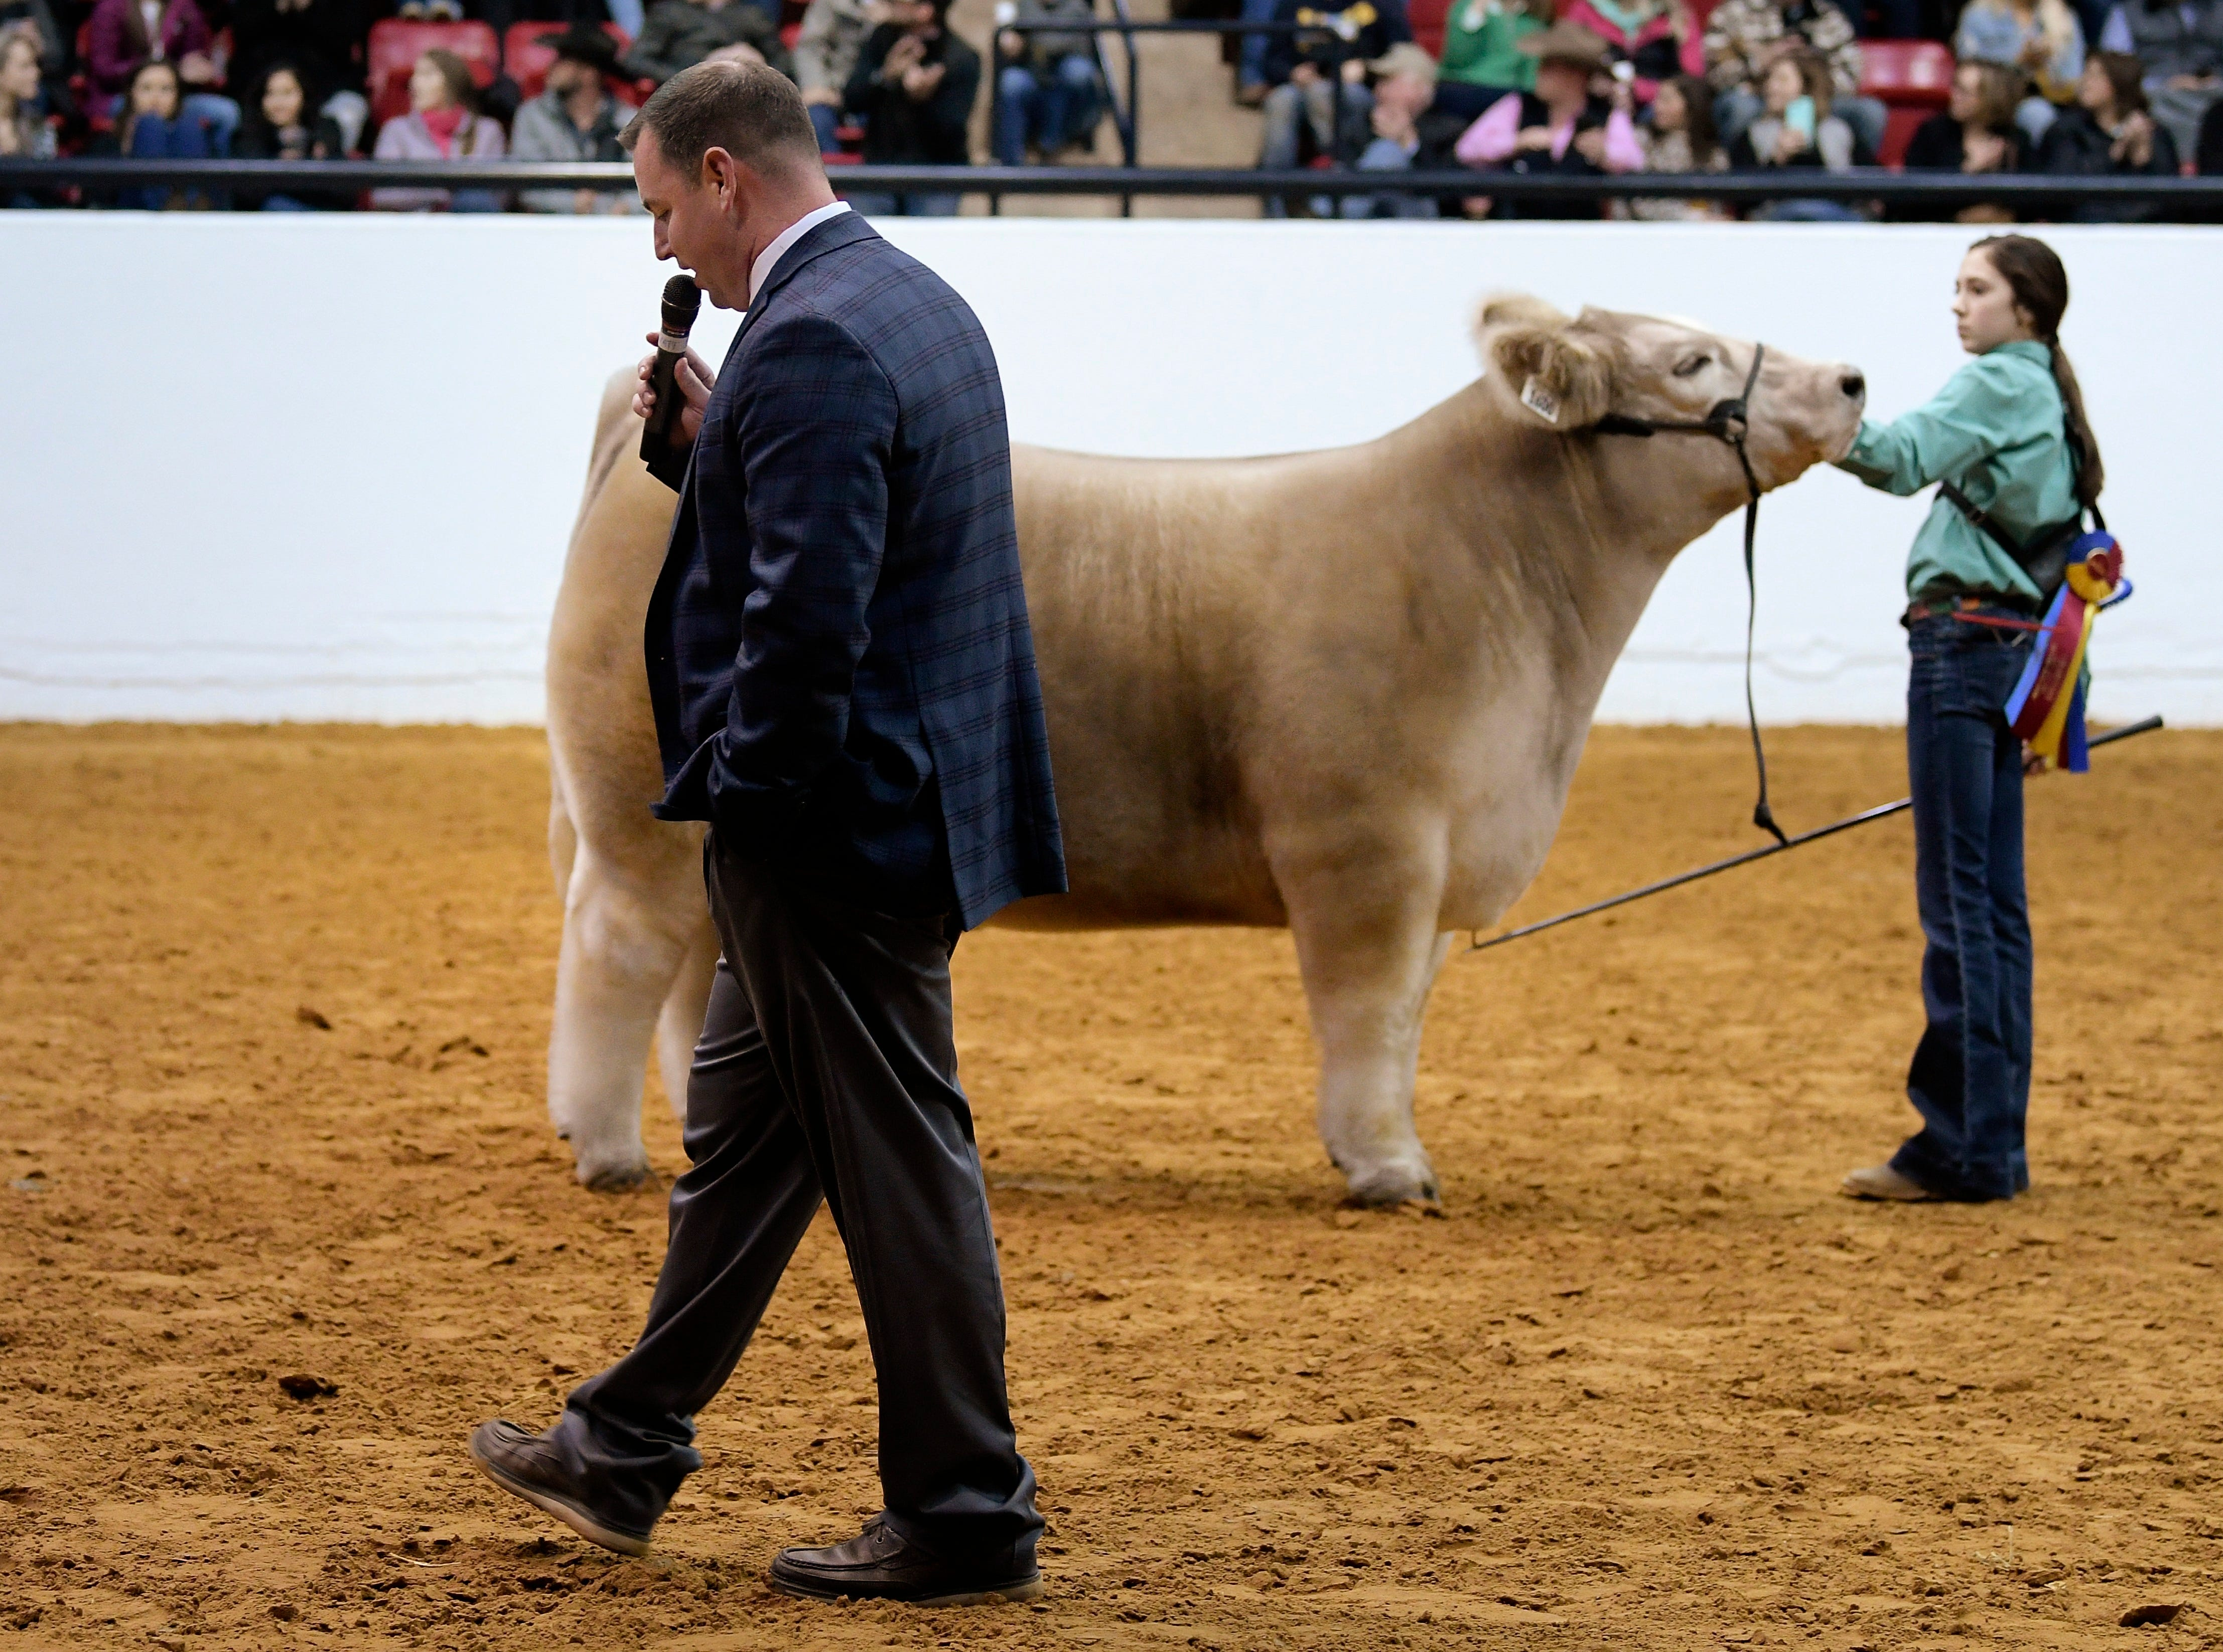 Aven Horn, right, shows her steer Bentley to judge Chris Mullinix during the Grand Champion steer round of the Stock Show at Will Rogers Memorial Center in Fort Worth, TX, Friday, Feb. 8, 2019. Bentley was named Grand Champion steer.